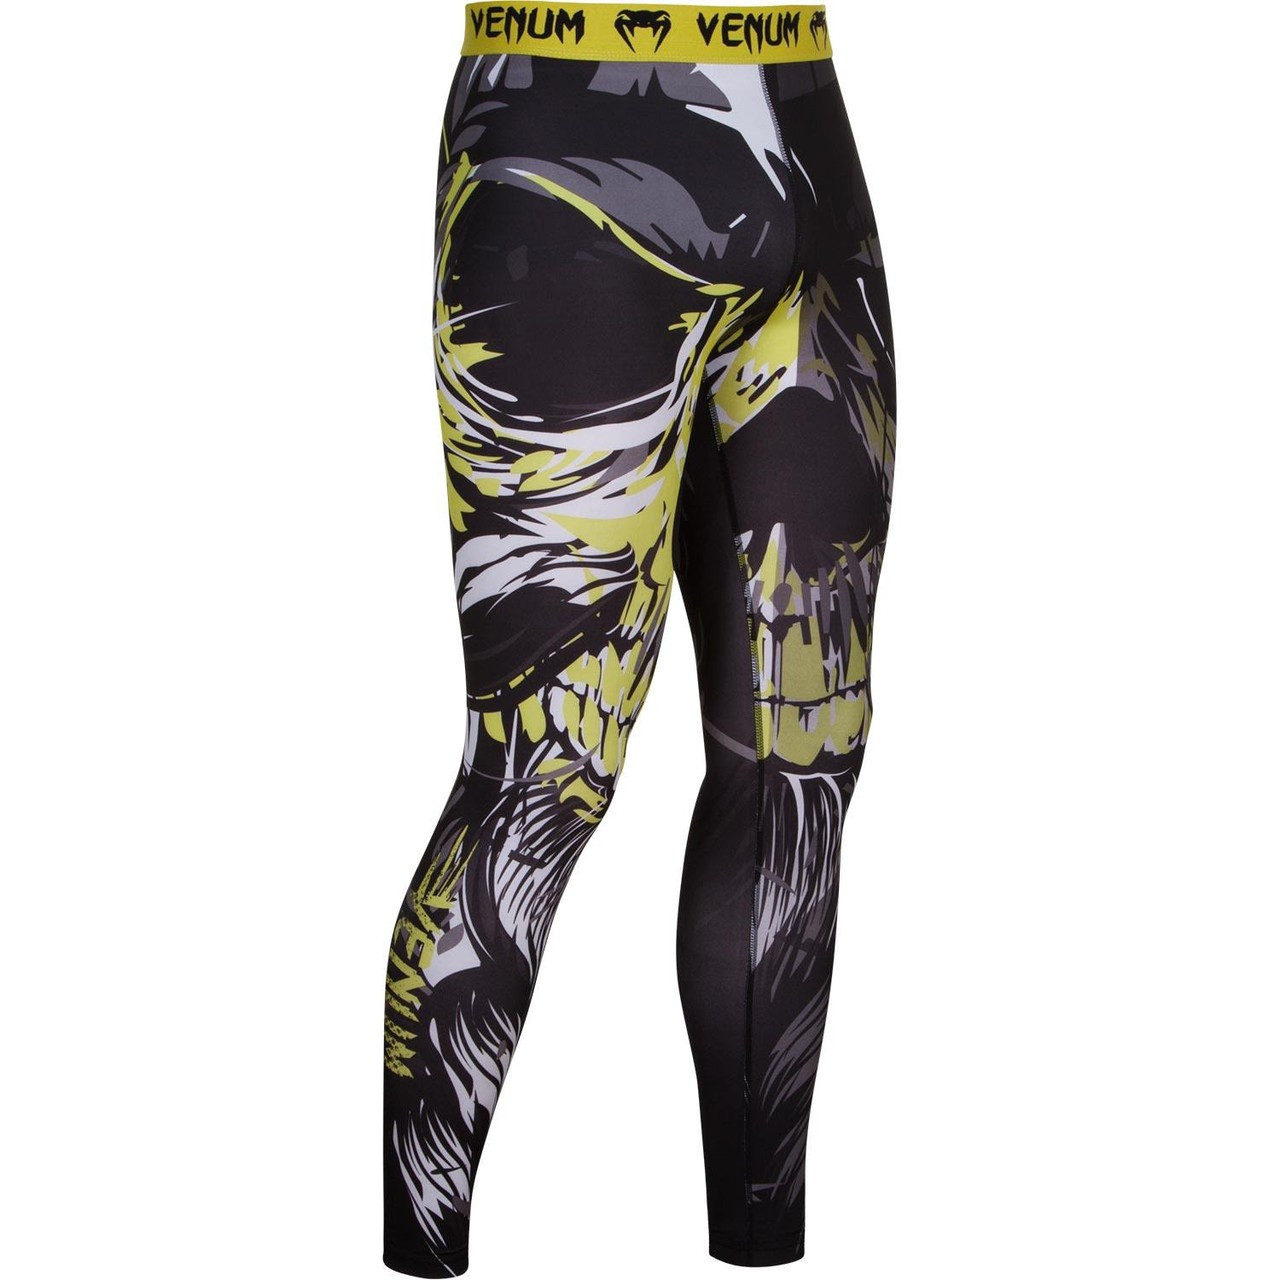 Venum Viking Spats available now at www.thejiujitsushop.com   Enjoy Free shipping on these beautiful beasts of spats.  High quality spats from Venum.